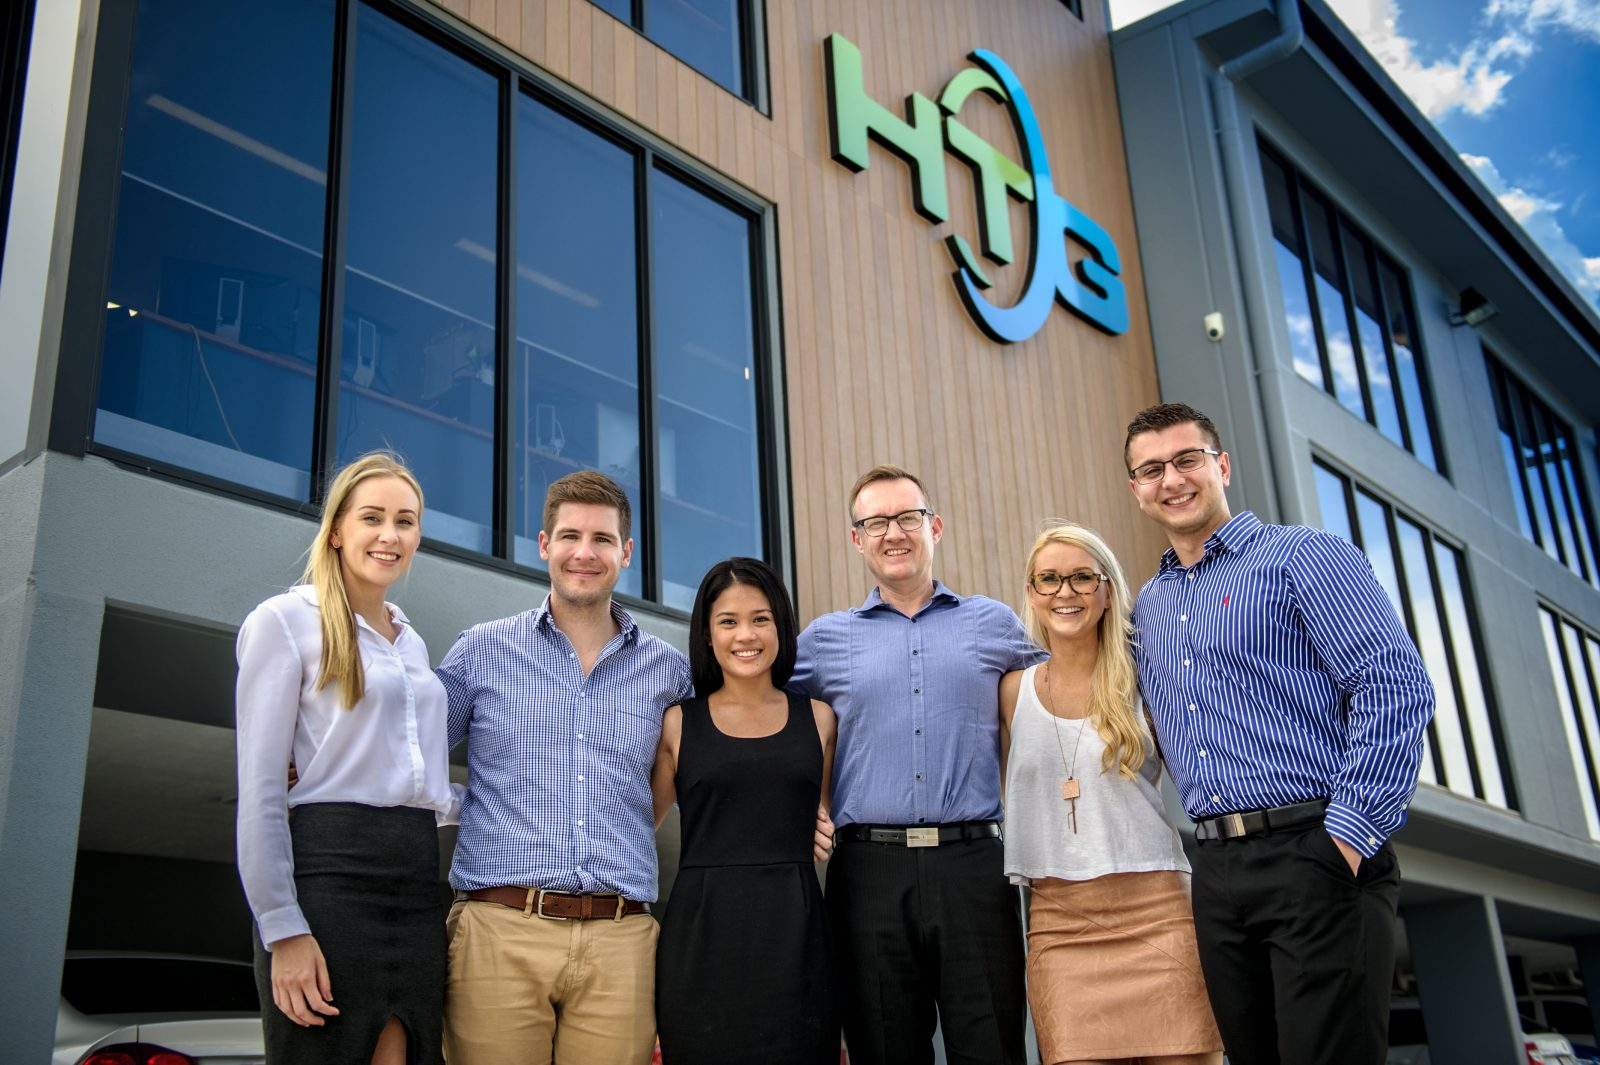 Team in business attire outside of HTG